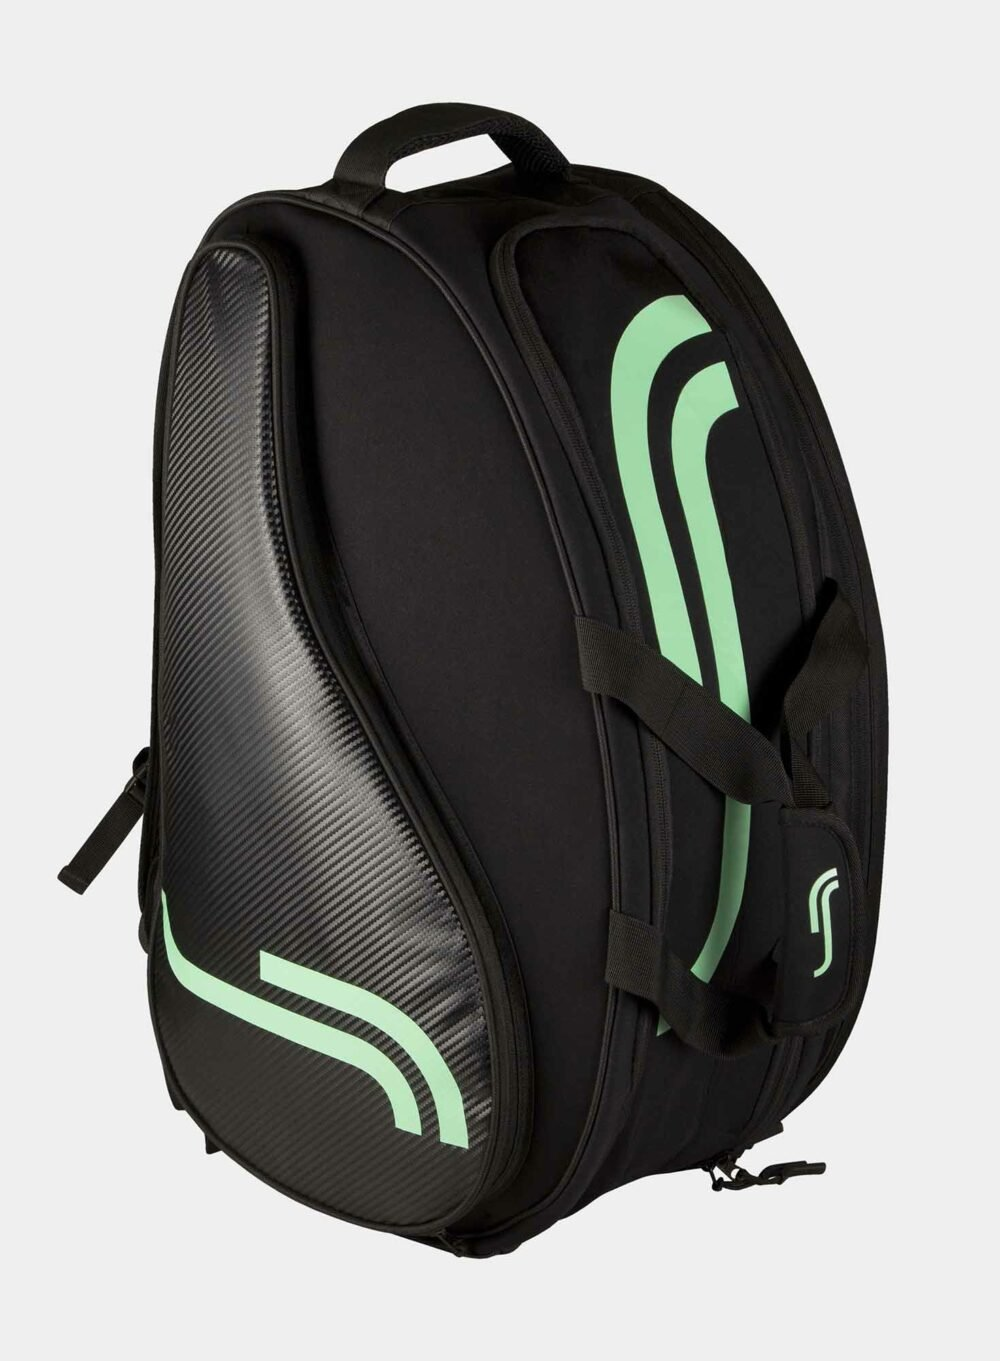 rs_classic_padel_small_green_1